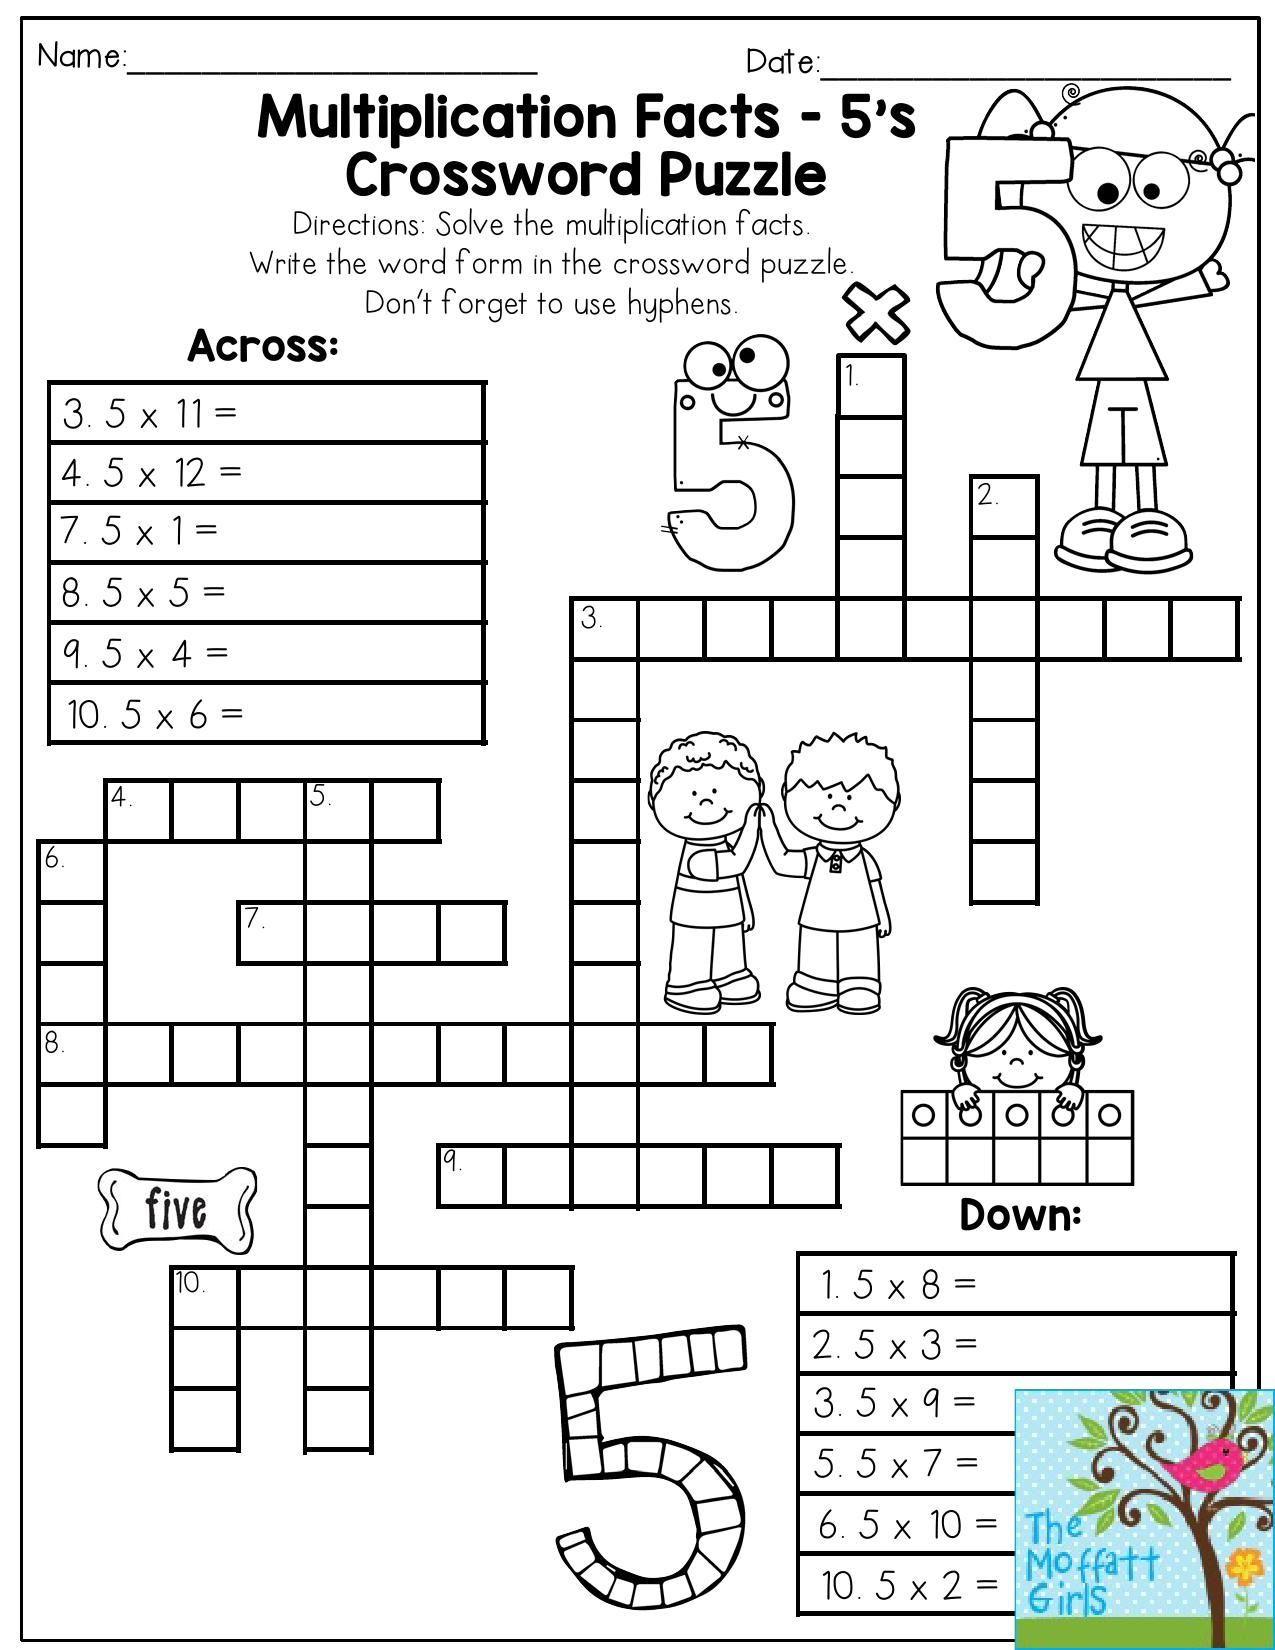 Printable Crossword Puzzles For 4th Graders